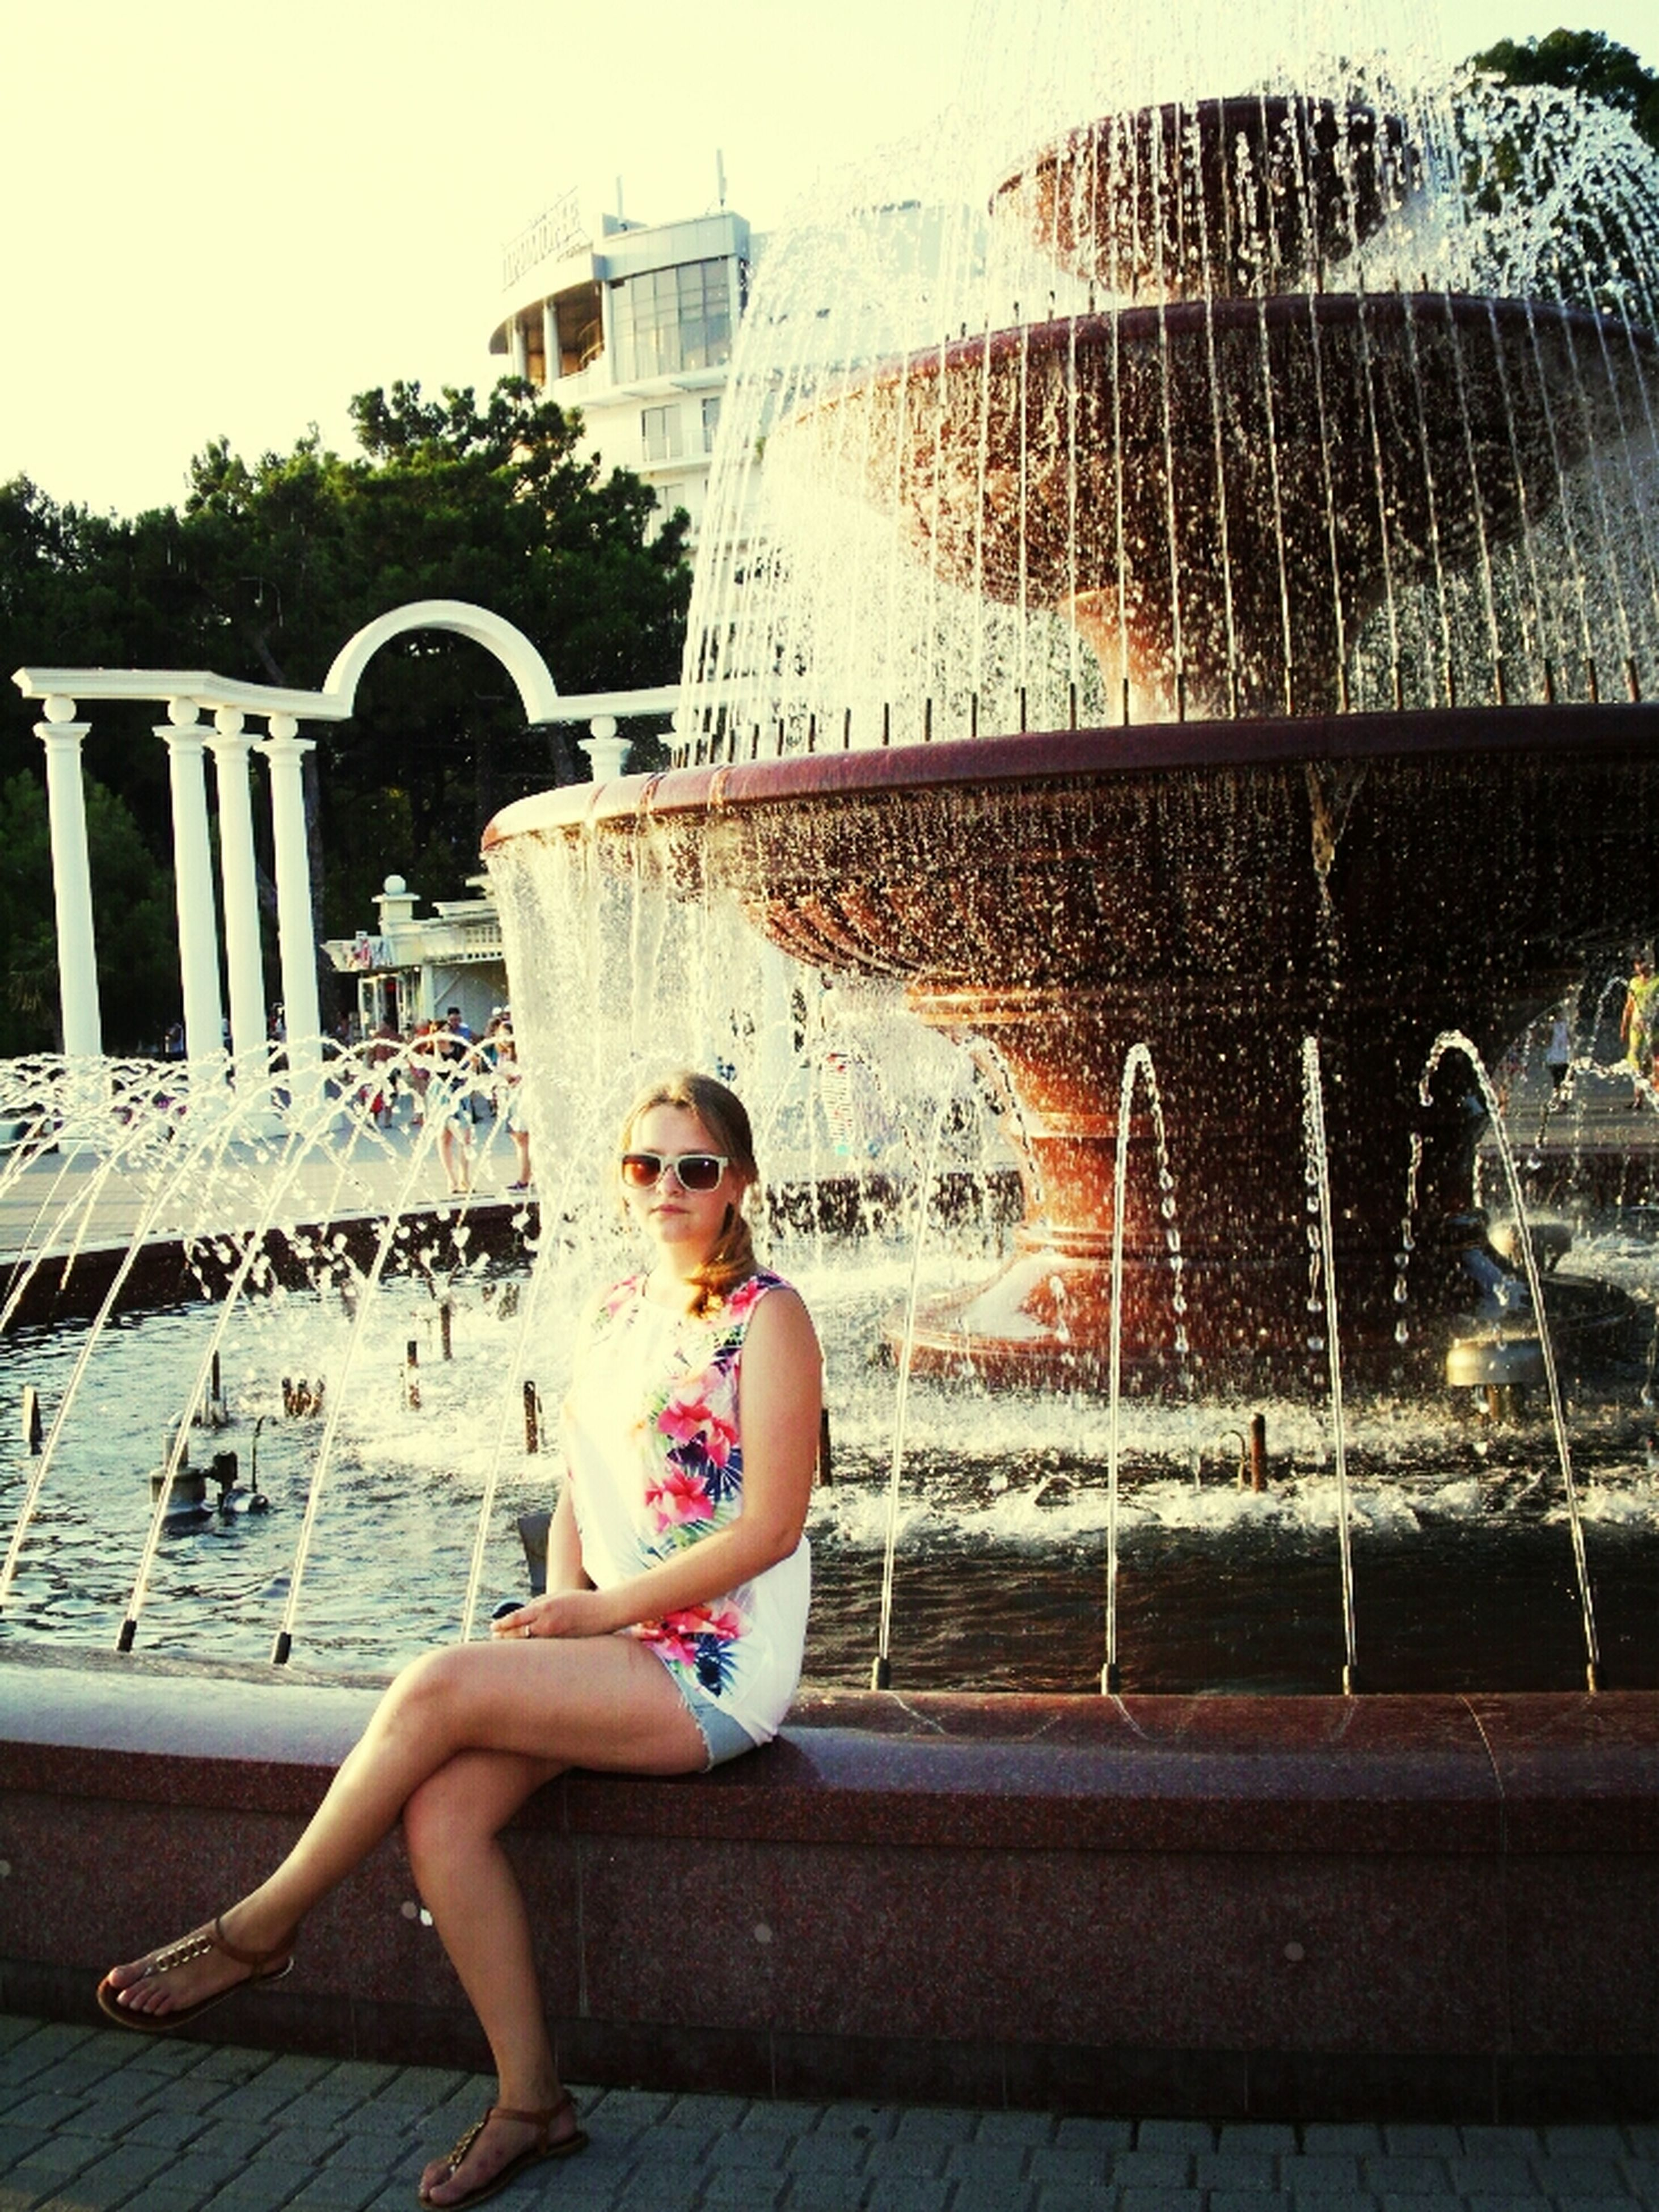 lifestyles, leisure activity, water, building exterior, architecture, built structure, full length, casual clothing, person, childhood, city, elementary age, sitting, young adult, boys, standing, day, fountain